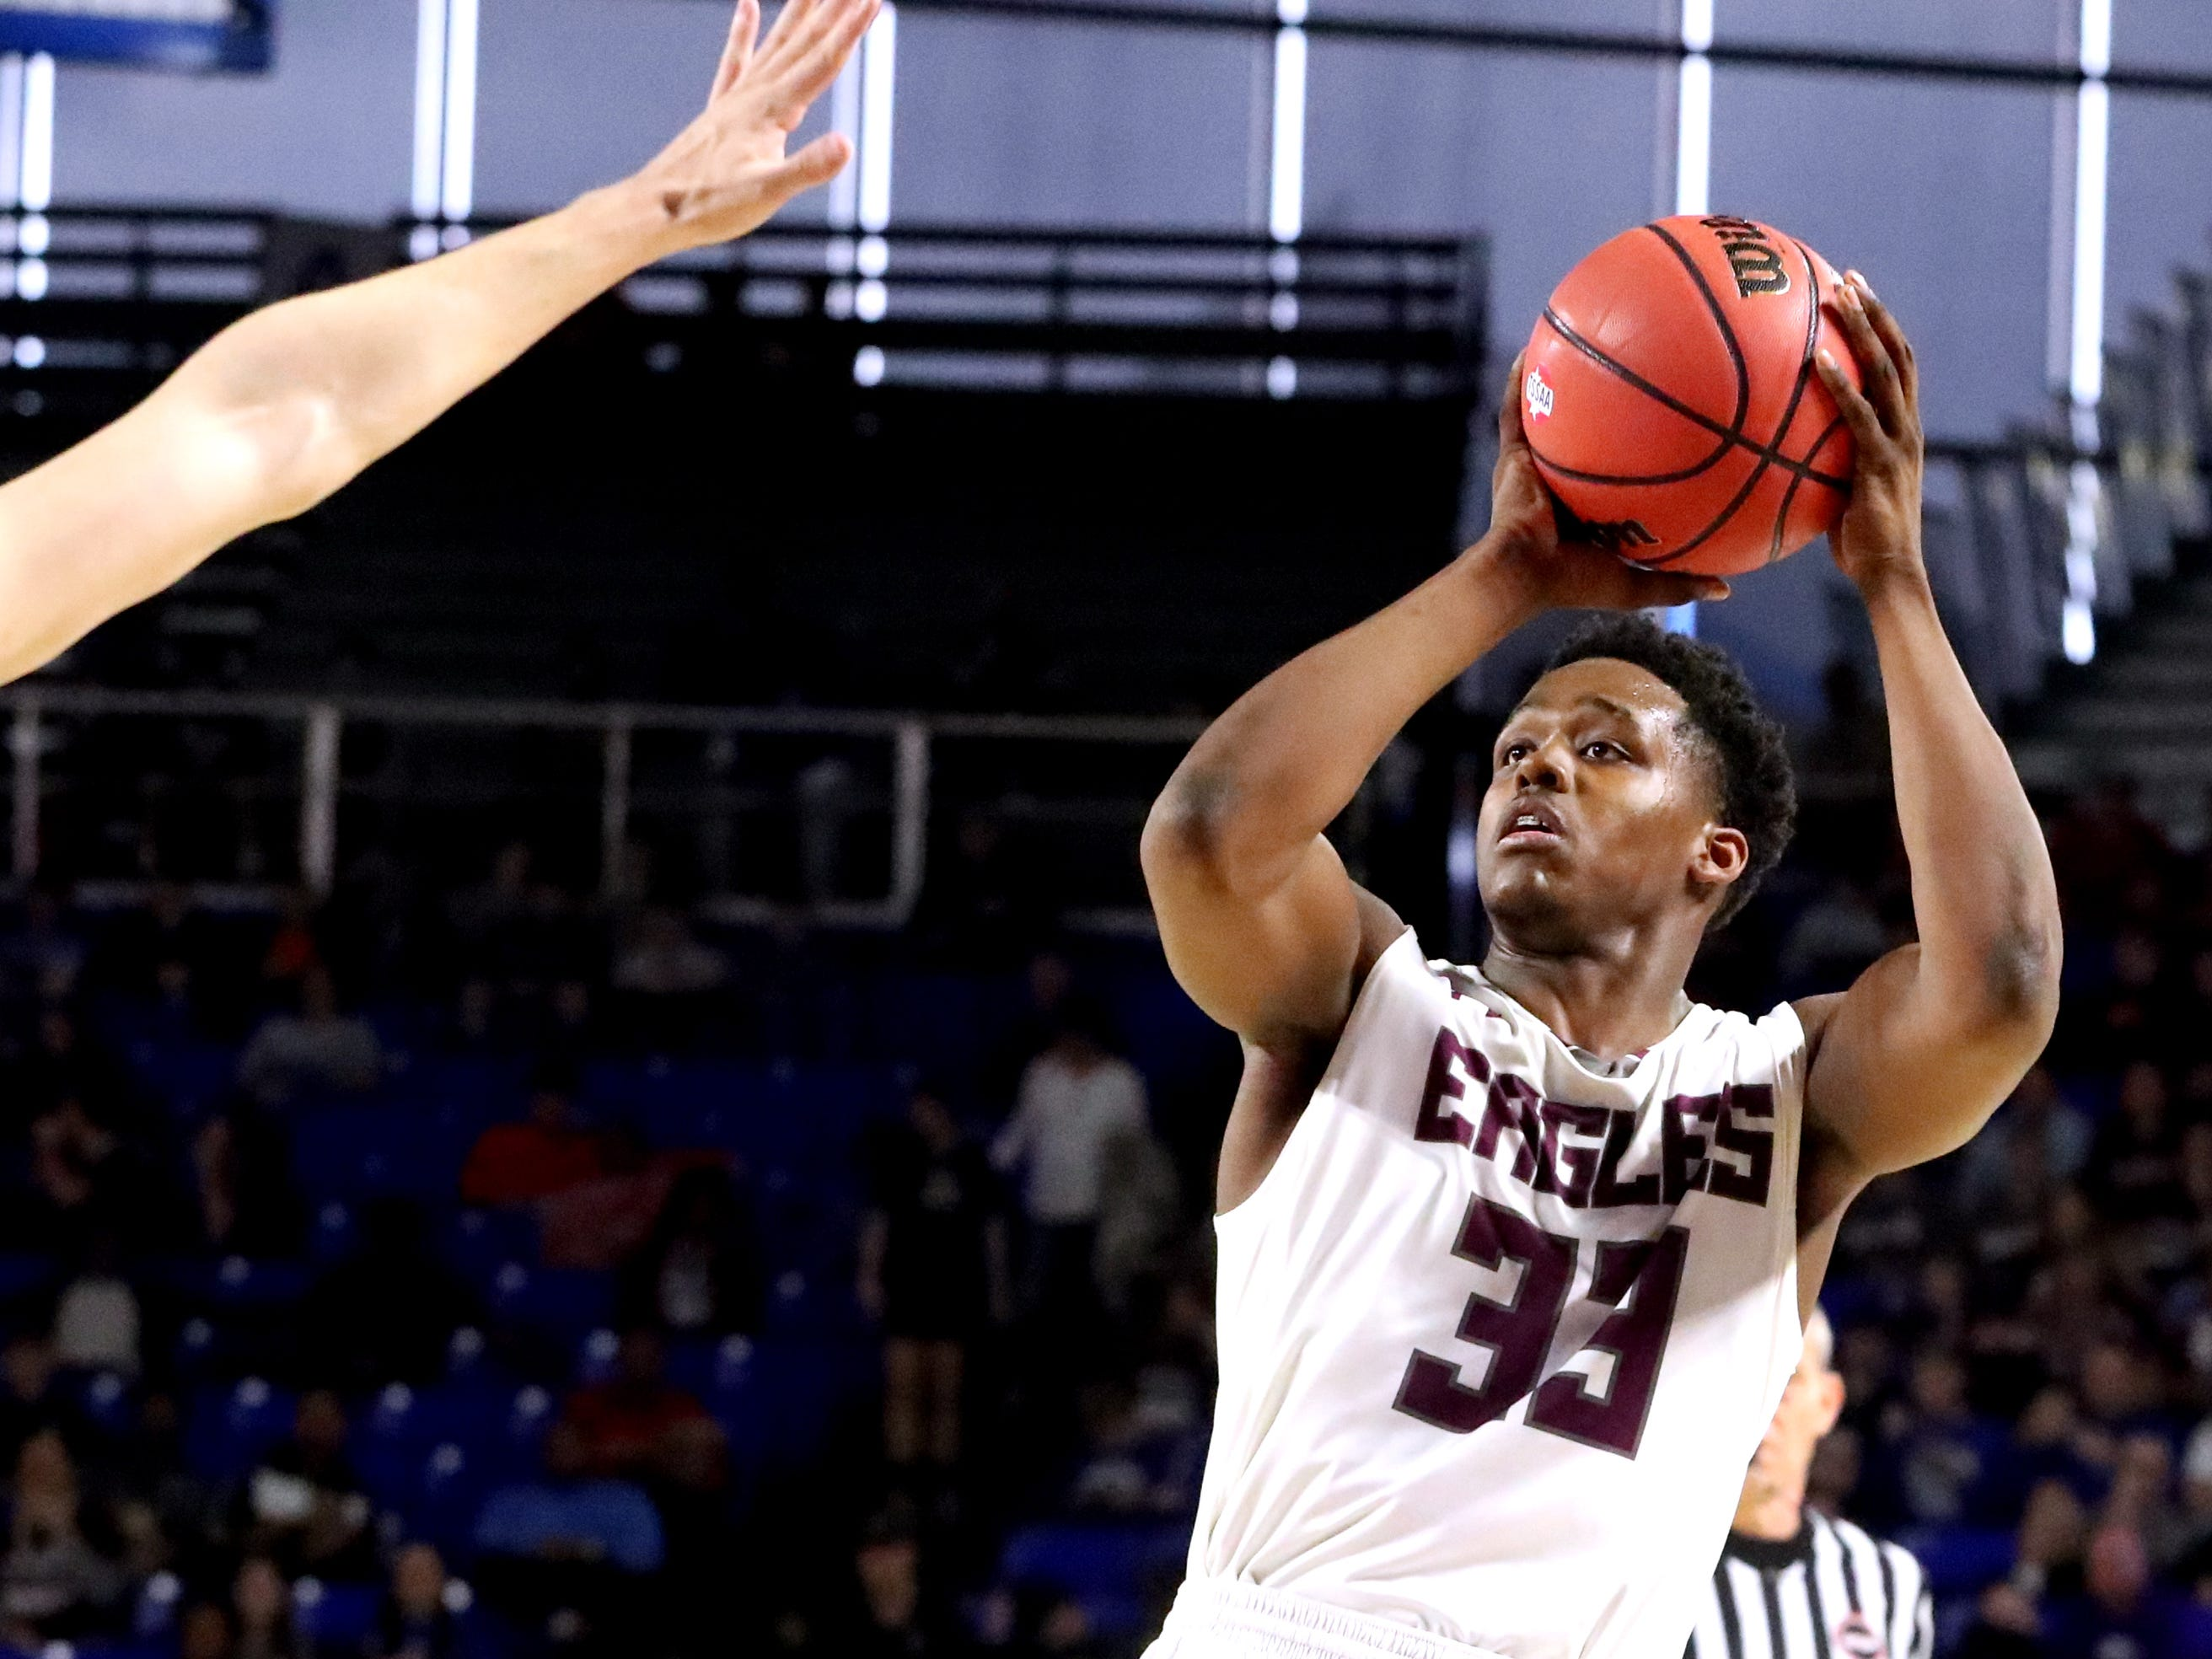 Eagleville's Demarious Stoudemire (33) shoots the ball during the quarterfinal round of the TSSAA Class A Boys State Tournament against Cosby, on Thursday, March 14, 2019, at Murphy Center in Murfreesboro, Tenn.